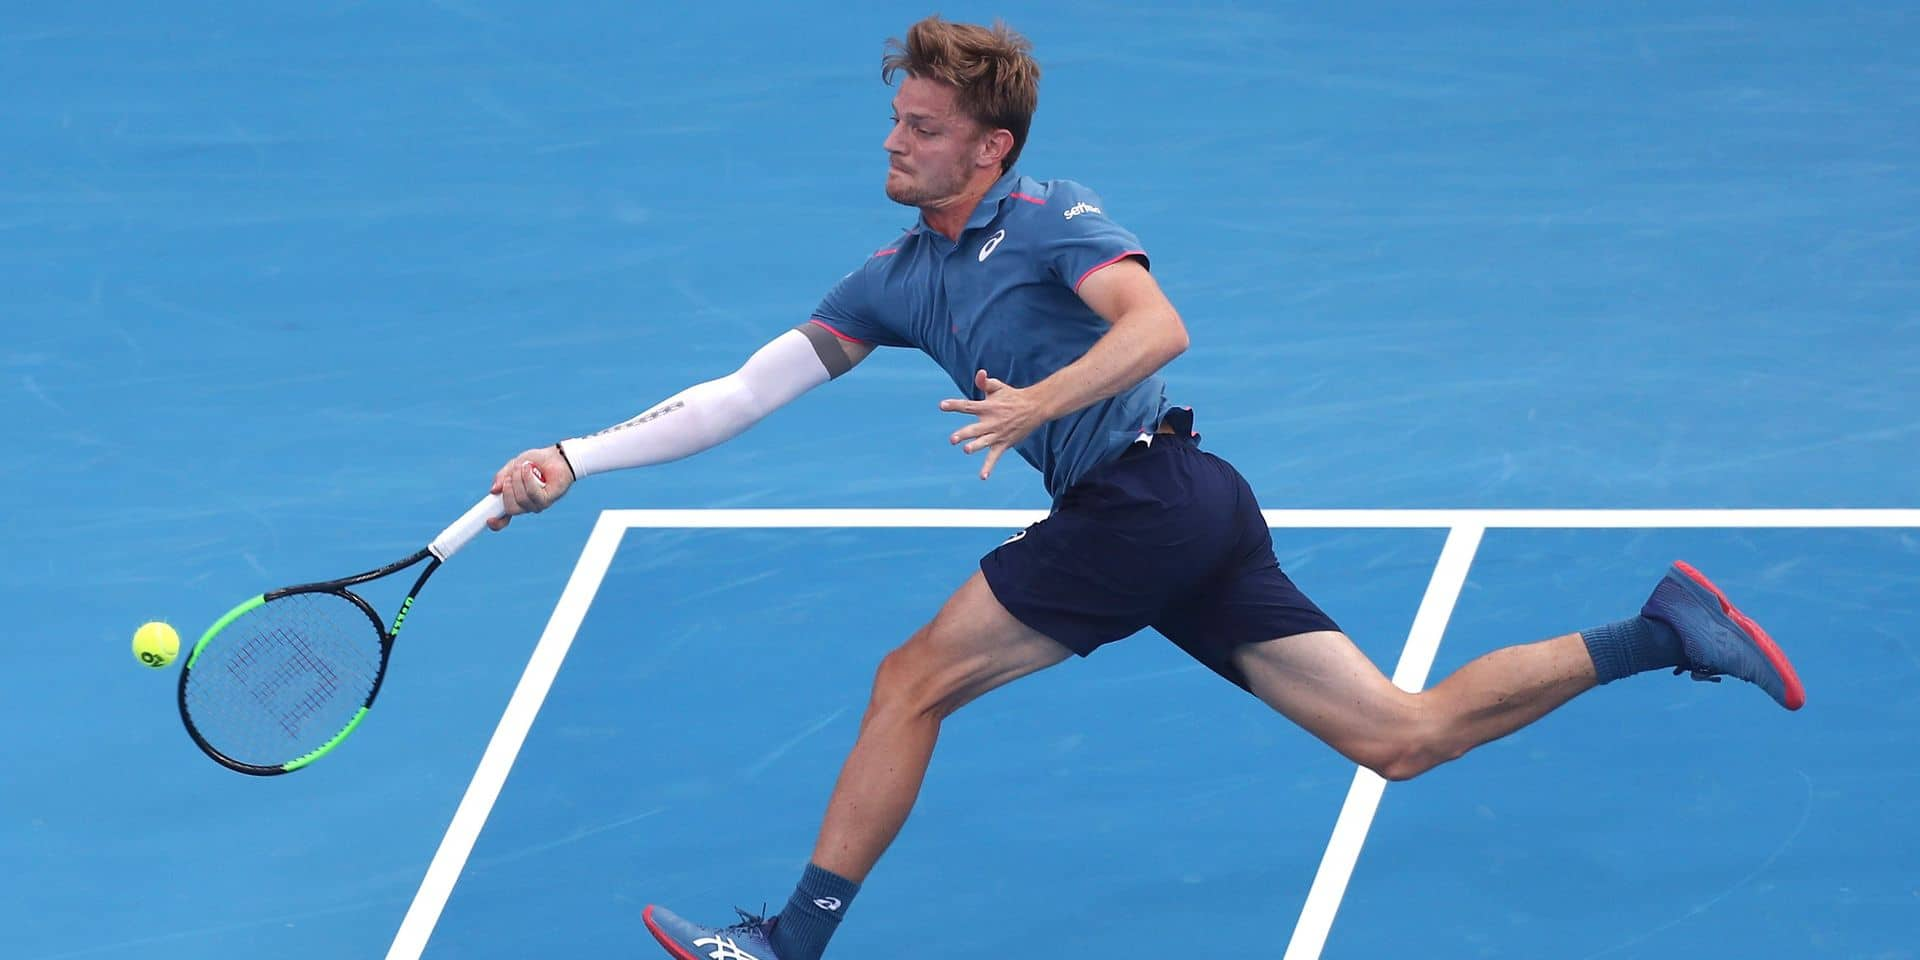 Belgium's David Goffin returns the ball to Lithuania's Ricardas Berankis during the ATP Qatar Open tennis competition in Doha on January 1, 2019. (Photo by KARIM JAAFAR / AFP)